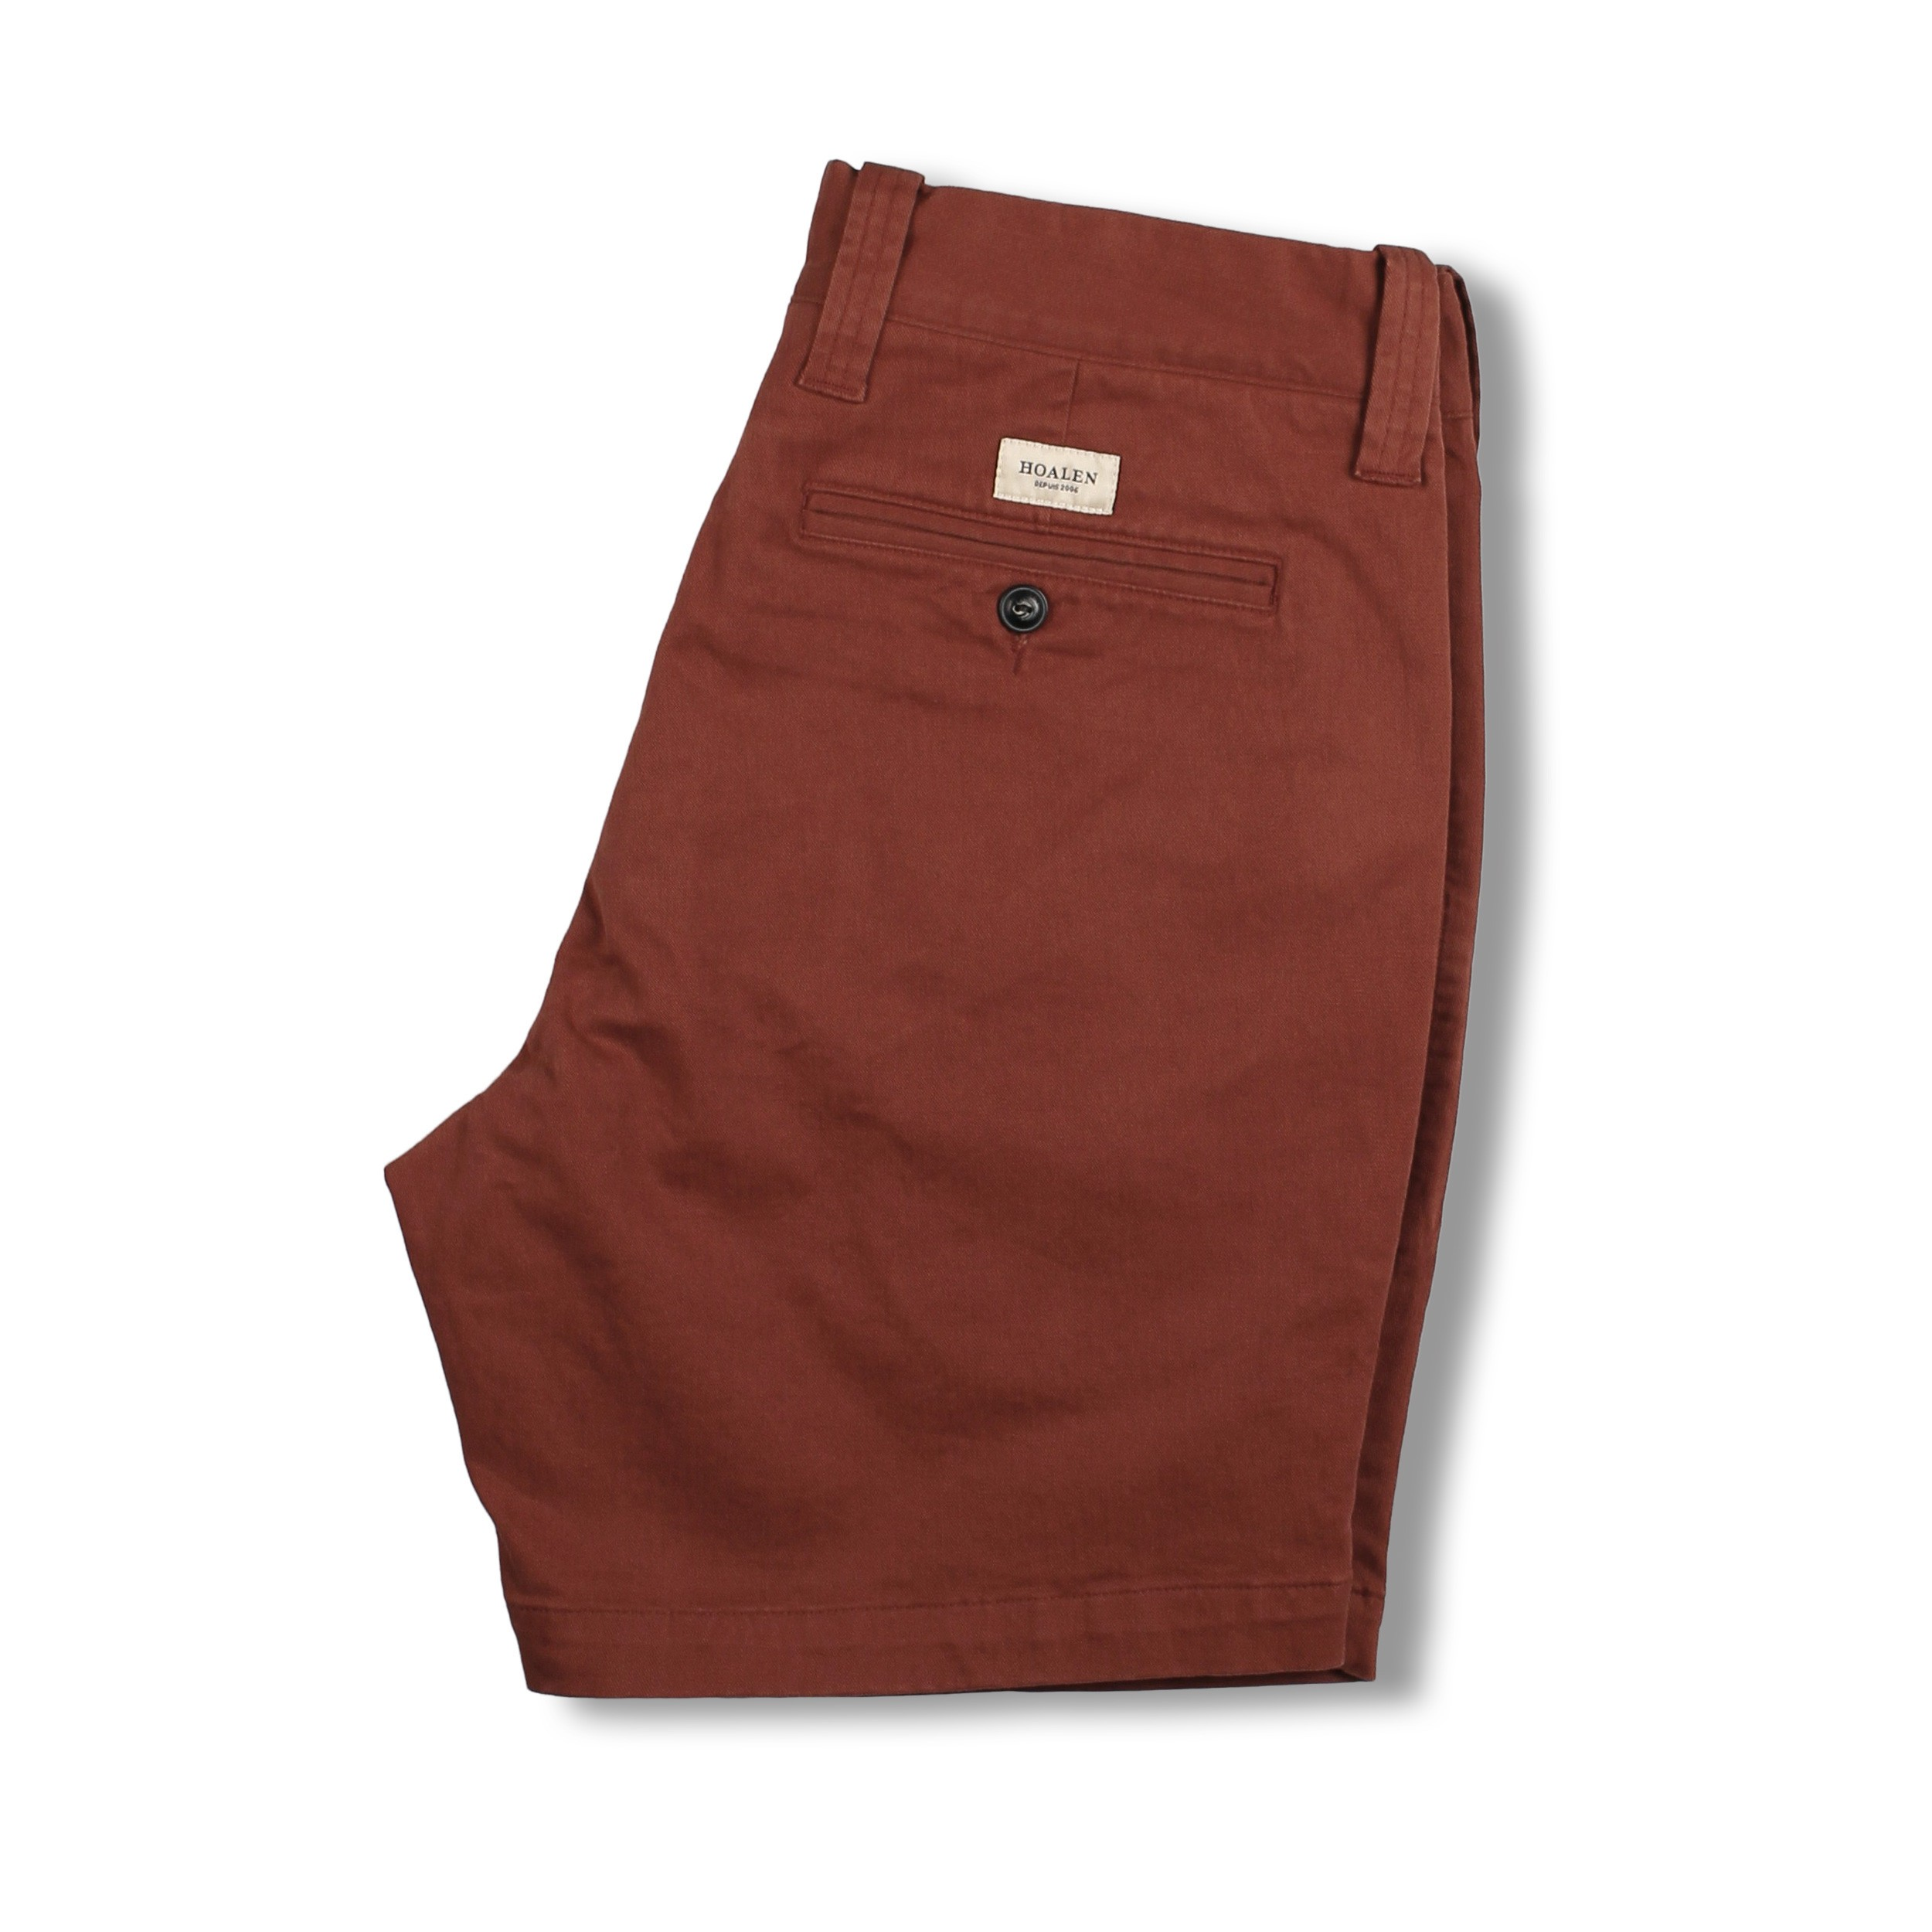 Rugged cotton twill